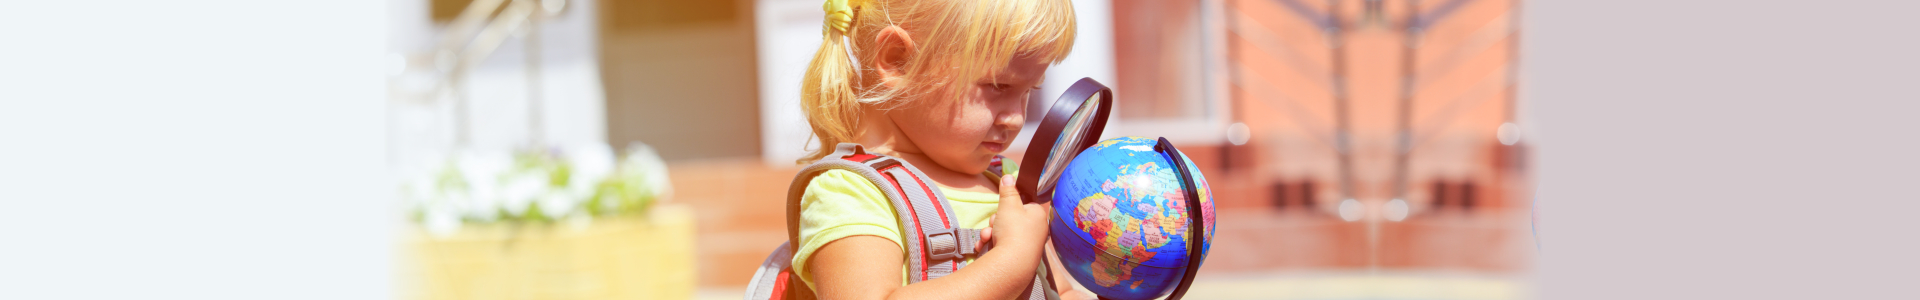 beautiful little girl holding a magnifying glass and a globe